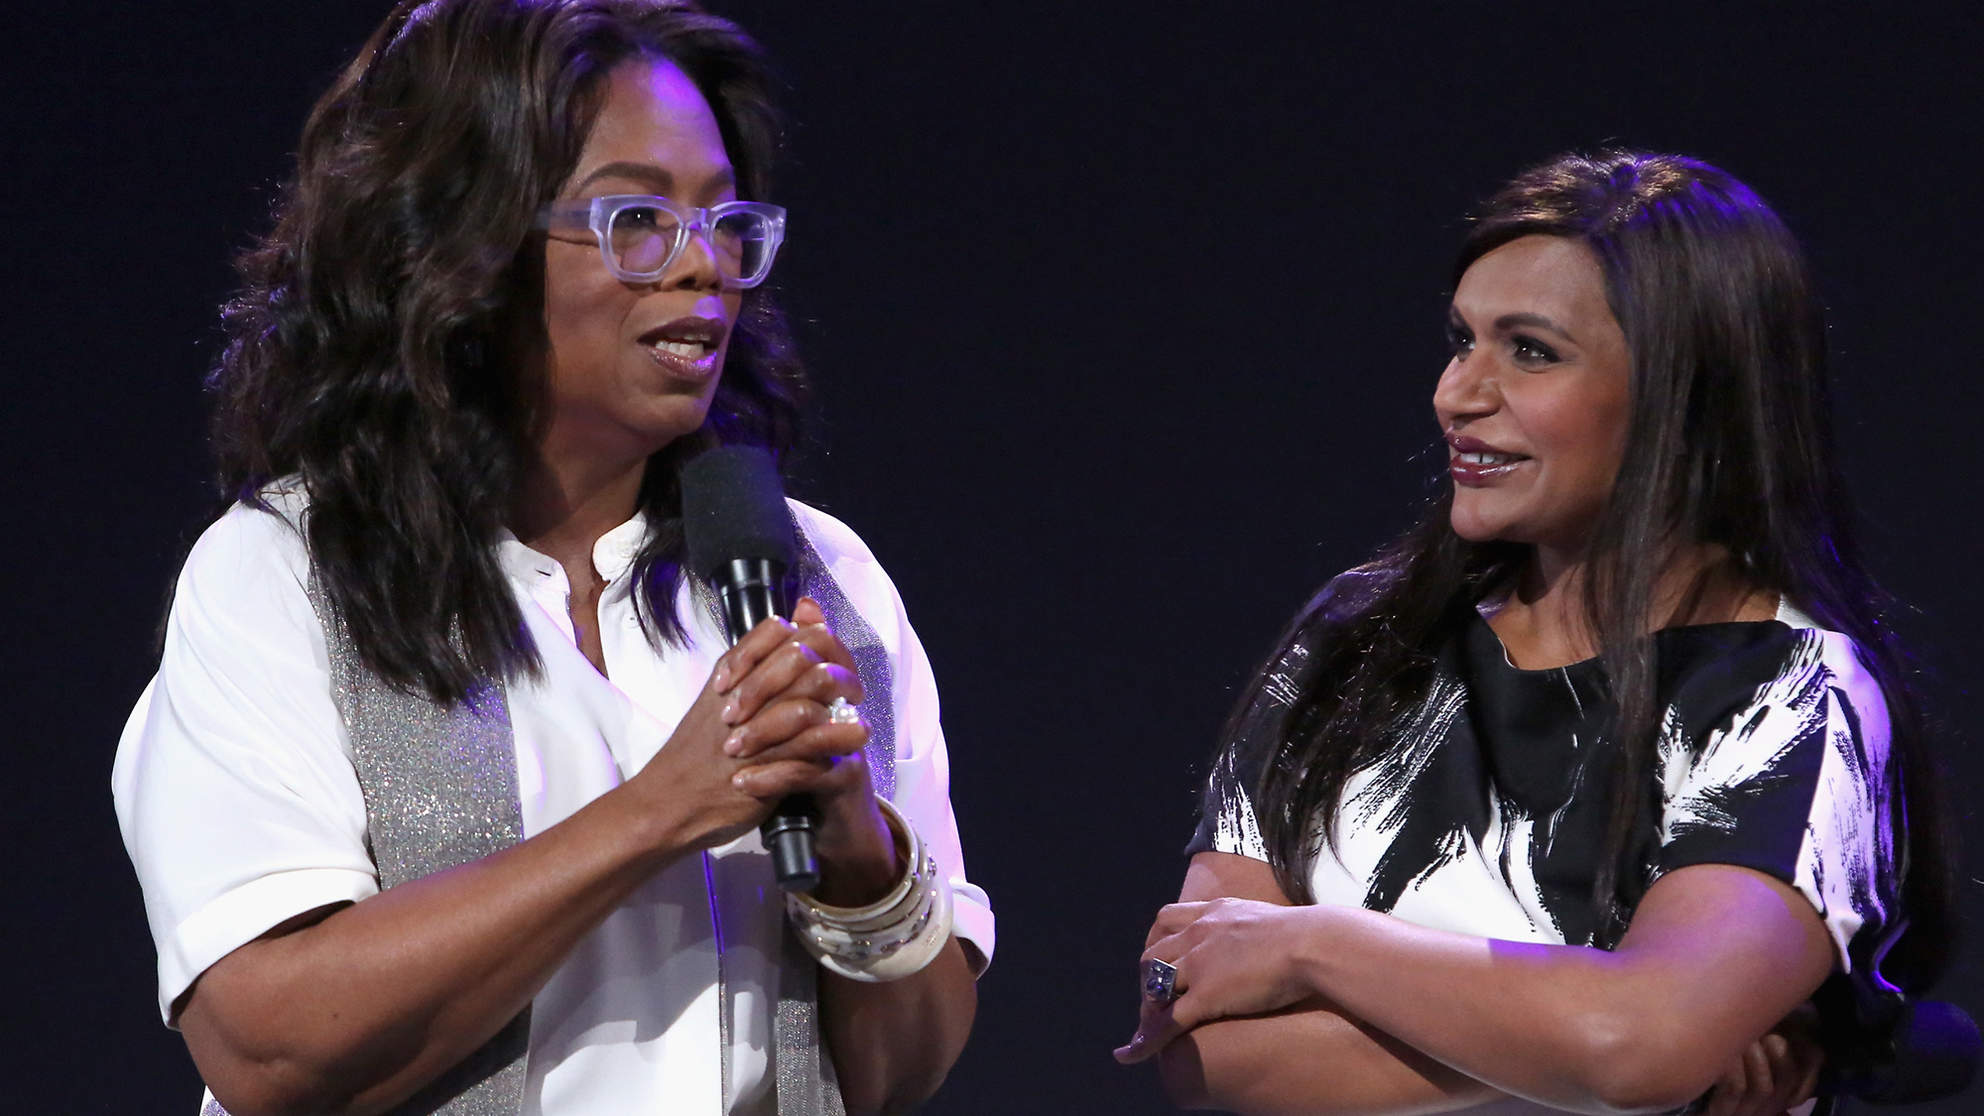 Oprah's Fabulous Baby Gift for Mindy Kaling's Daughter Was So Big It Needed Its Own U-Haul Truck